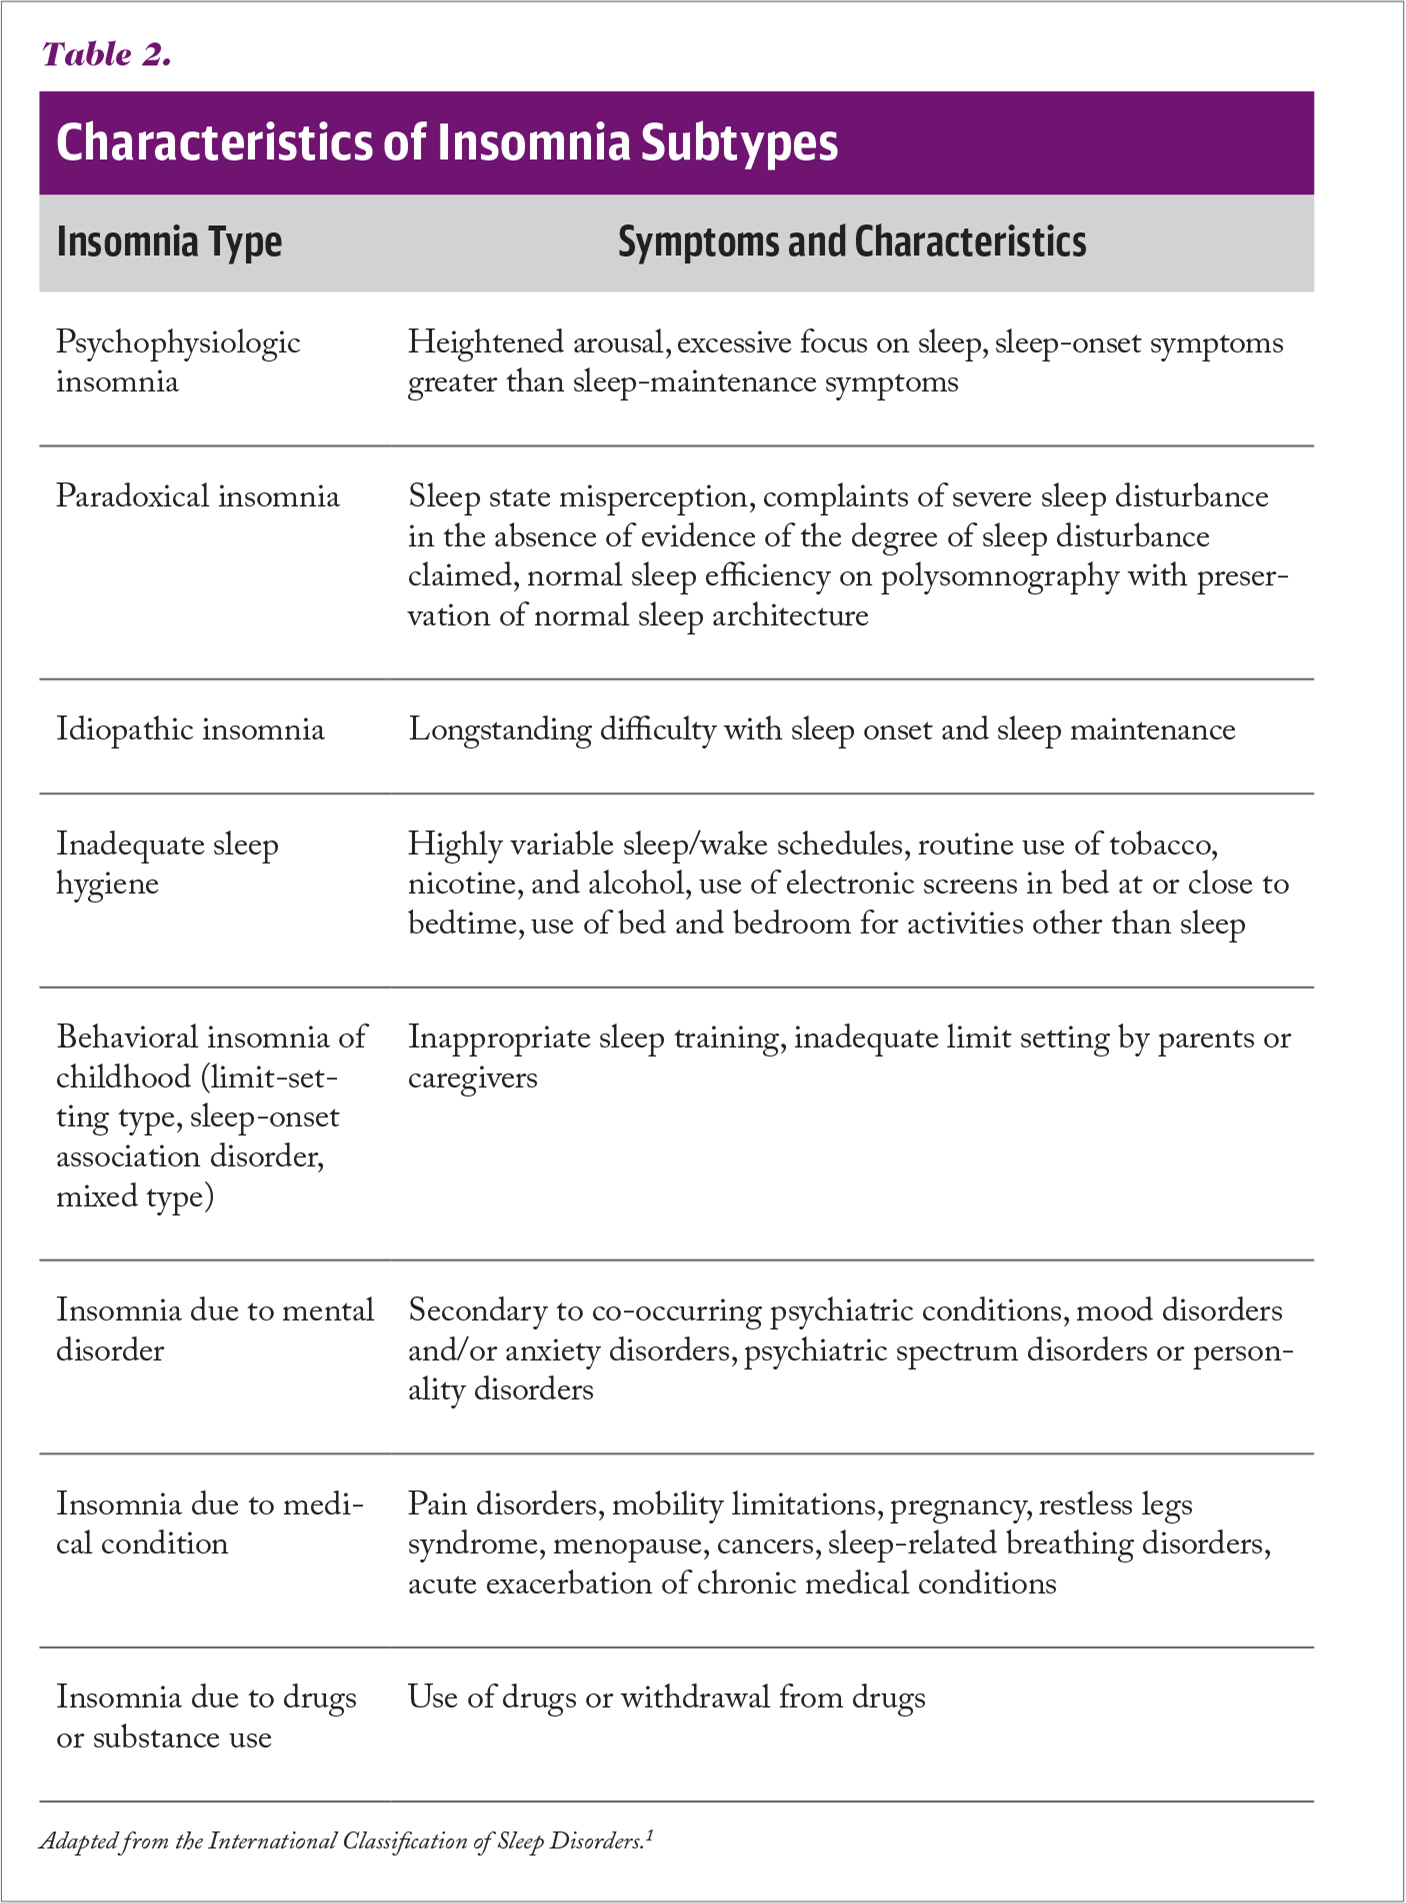 Characteristics of Insomnia Subtypes